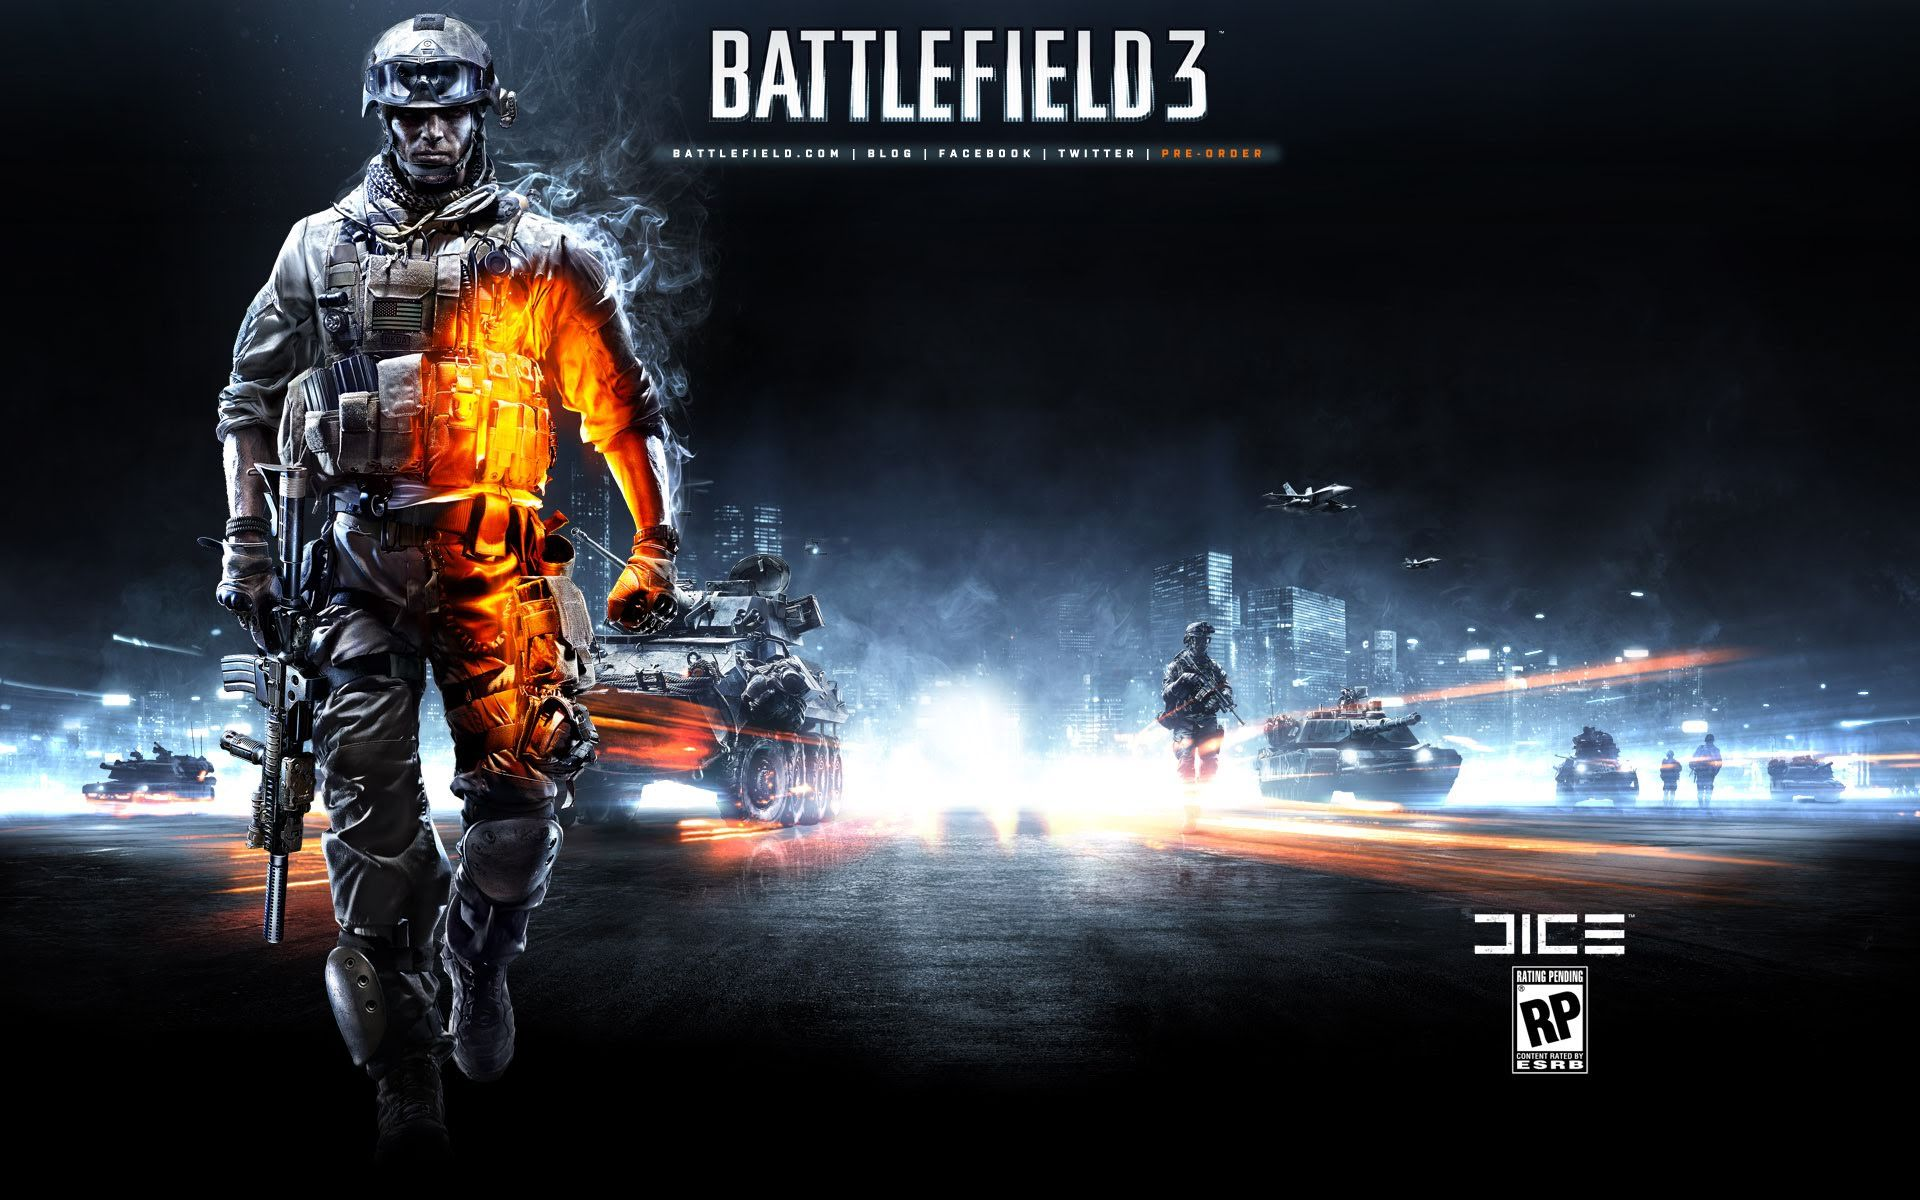 Hd Wallpapers Widescreen 1080p 3d Wallpapers Hd Wallpapers Battlefield 3 Wallpaper Full Hd 1080p 1920 Battlefield 3 Battlefield Hd Images